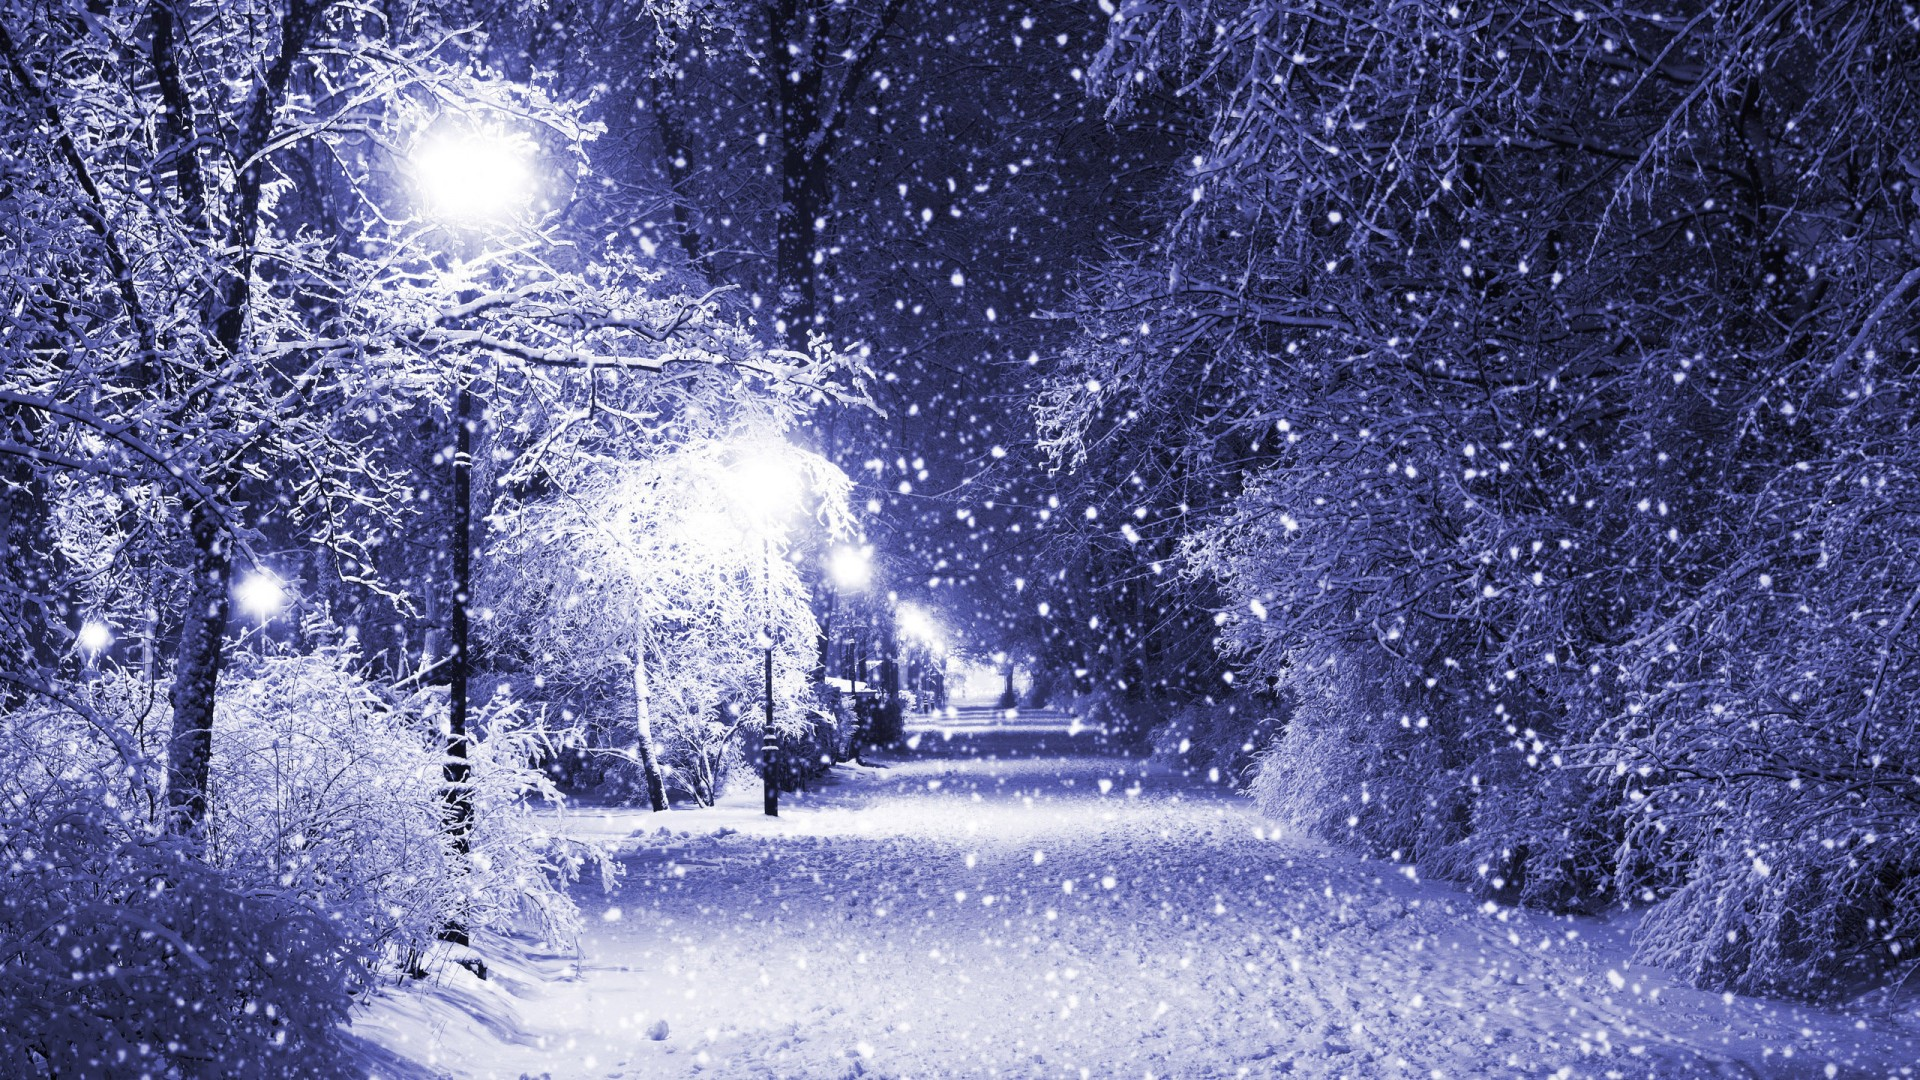 Appealing Laptop Wallpaper: Exciting Snowfall On The Street Wallpaper 1920x1080px